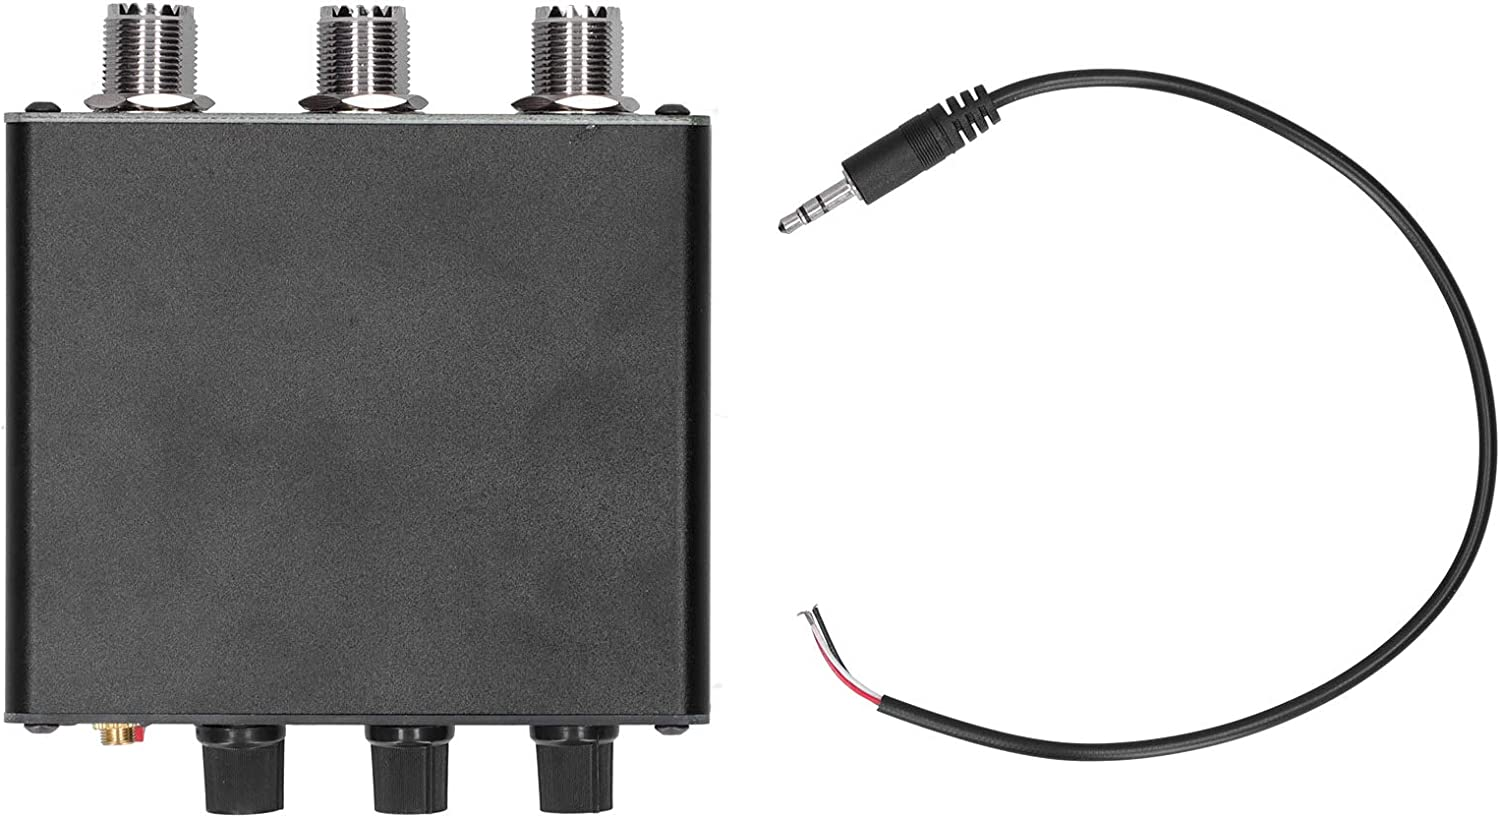 Cheap QRM Lightweight and Stable 1‑30 Signal MHz with Latest item Canceller